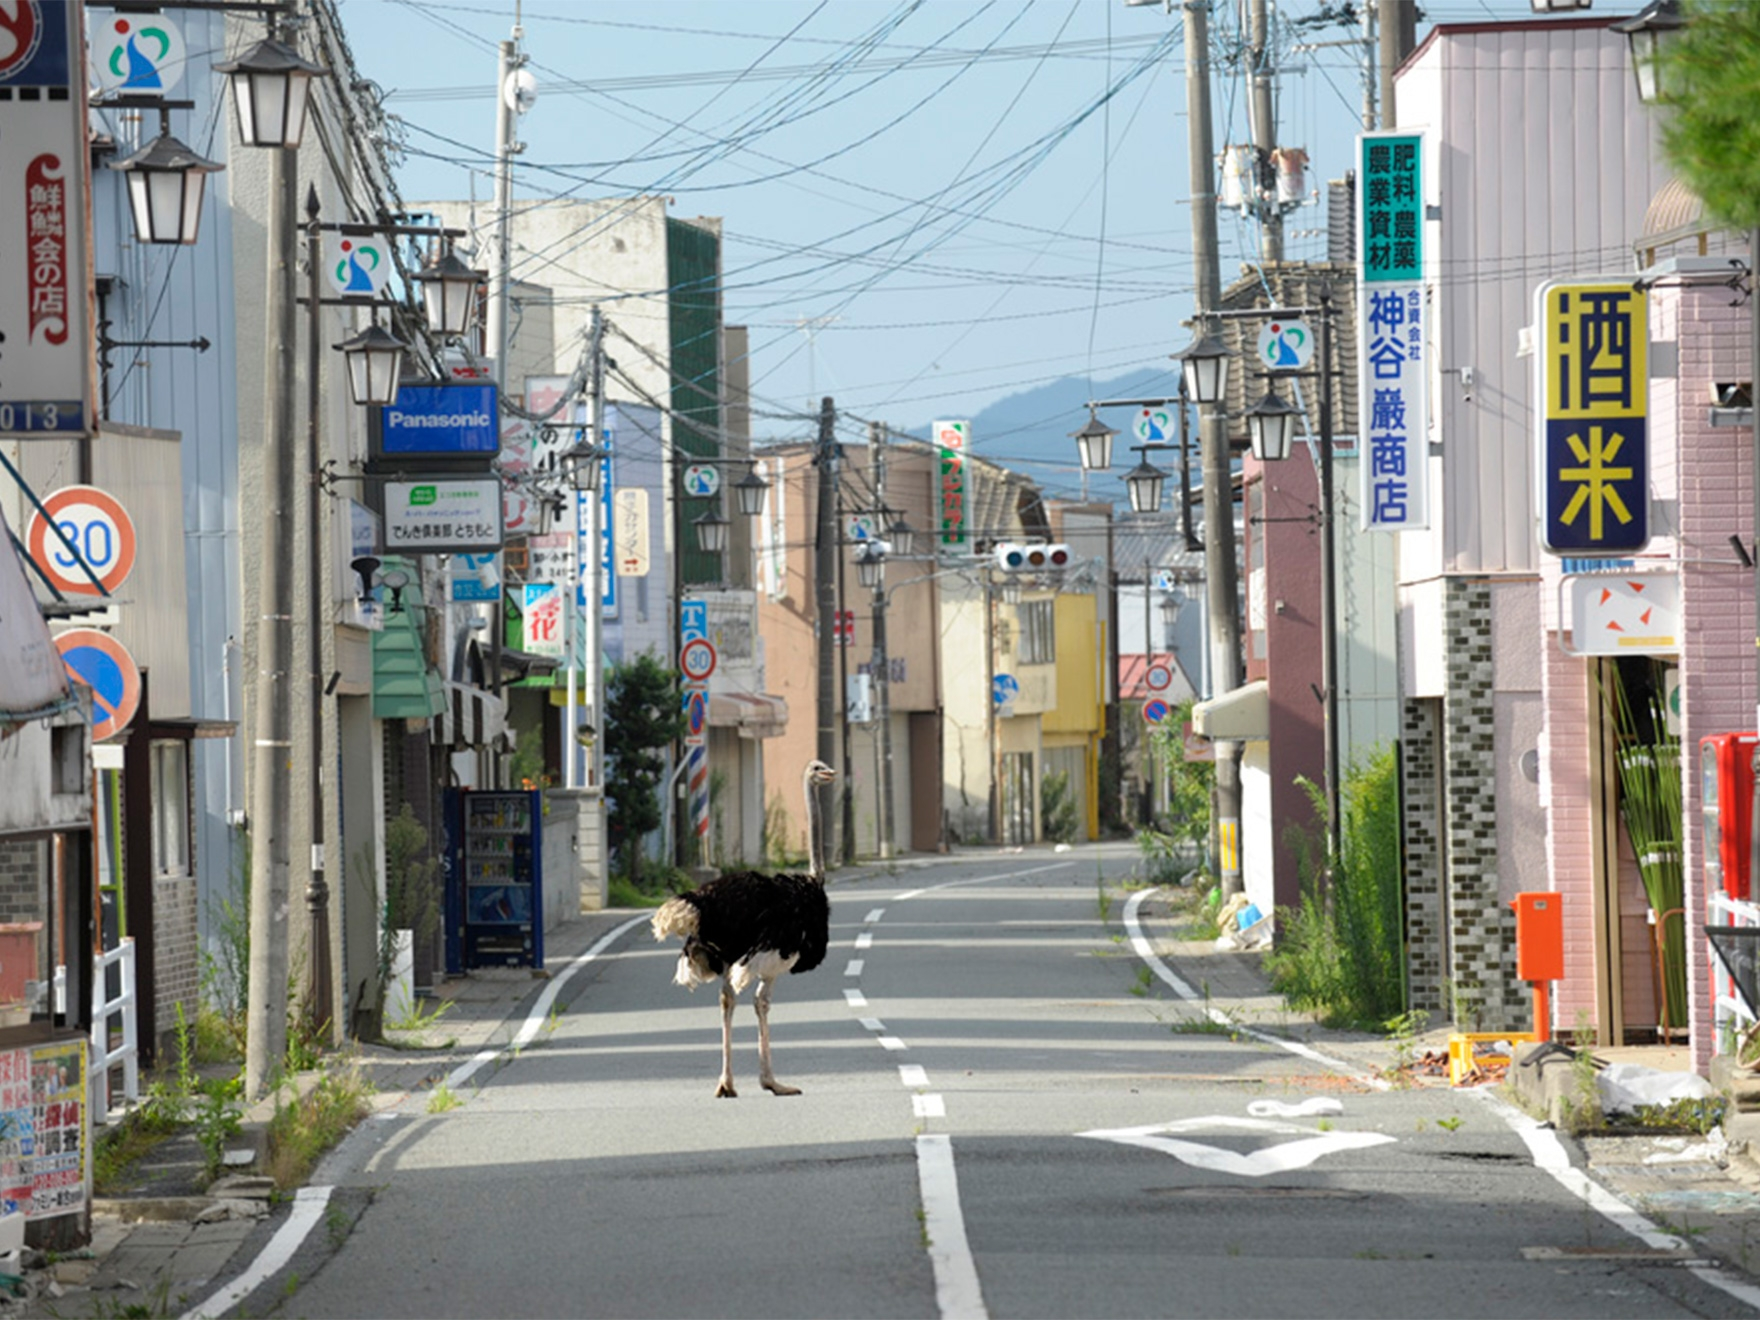 Yasusuke Ōta, Deserted Town from the series The Abandoned Animals of Fukushima, 2011